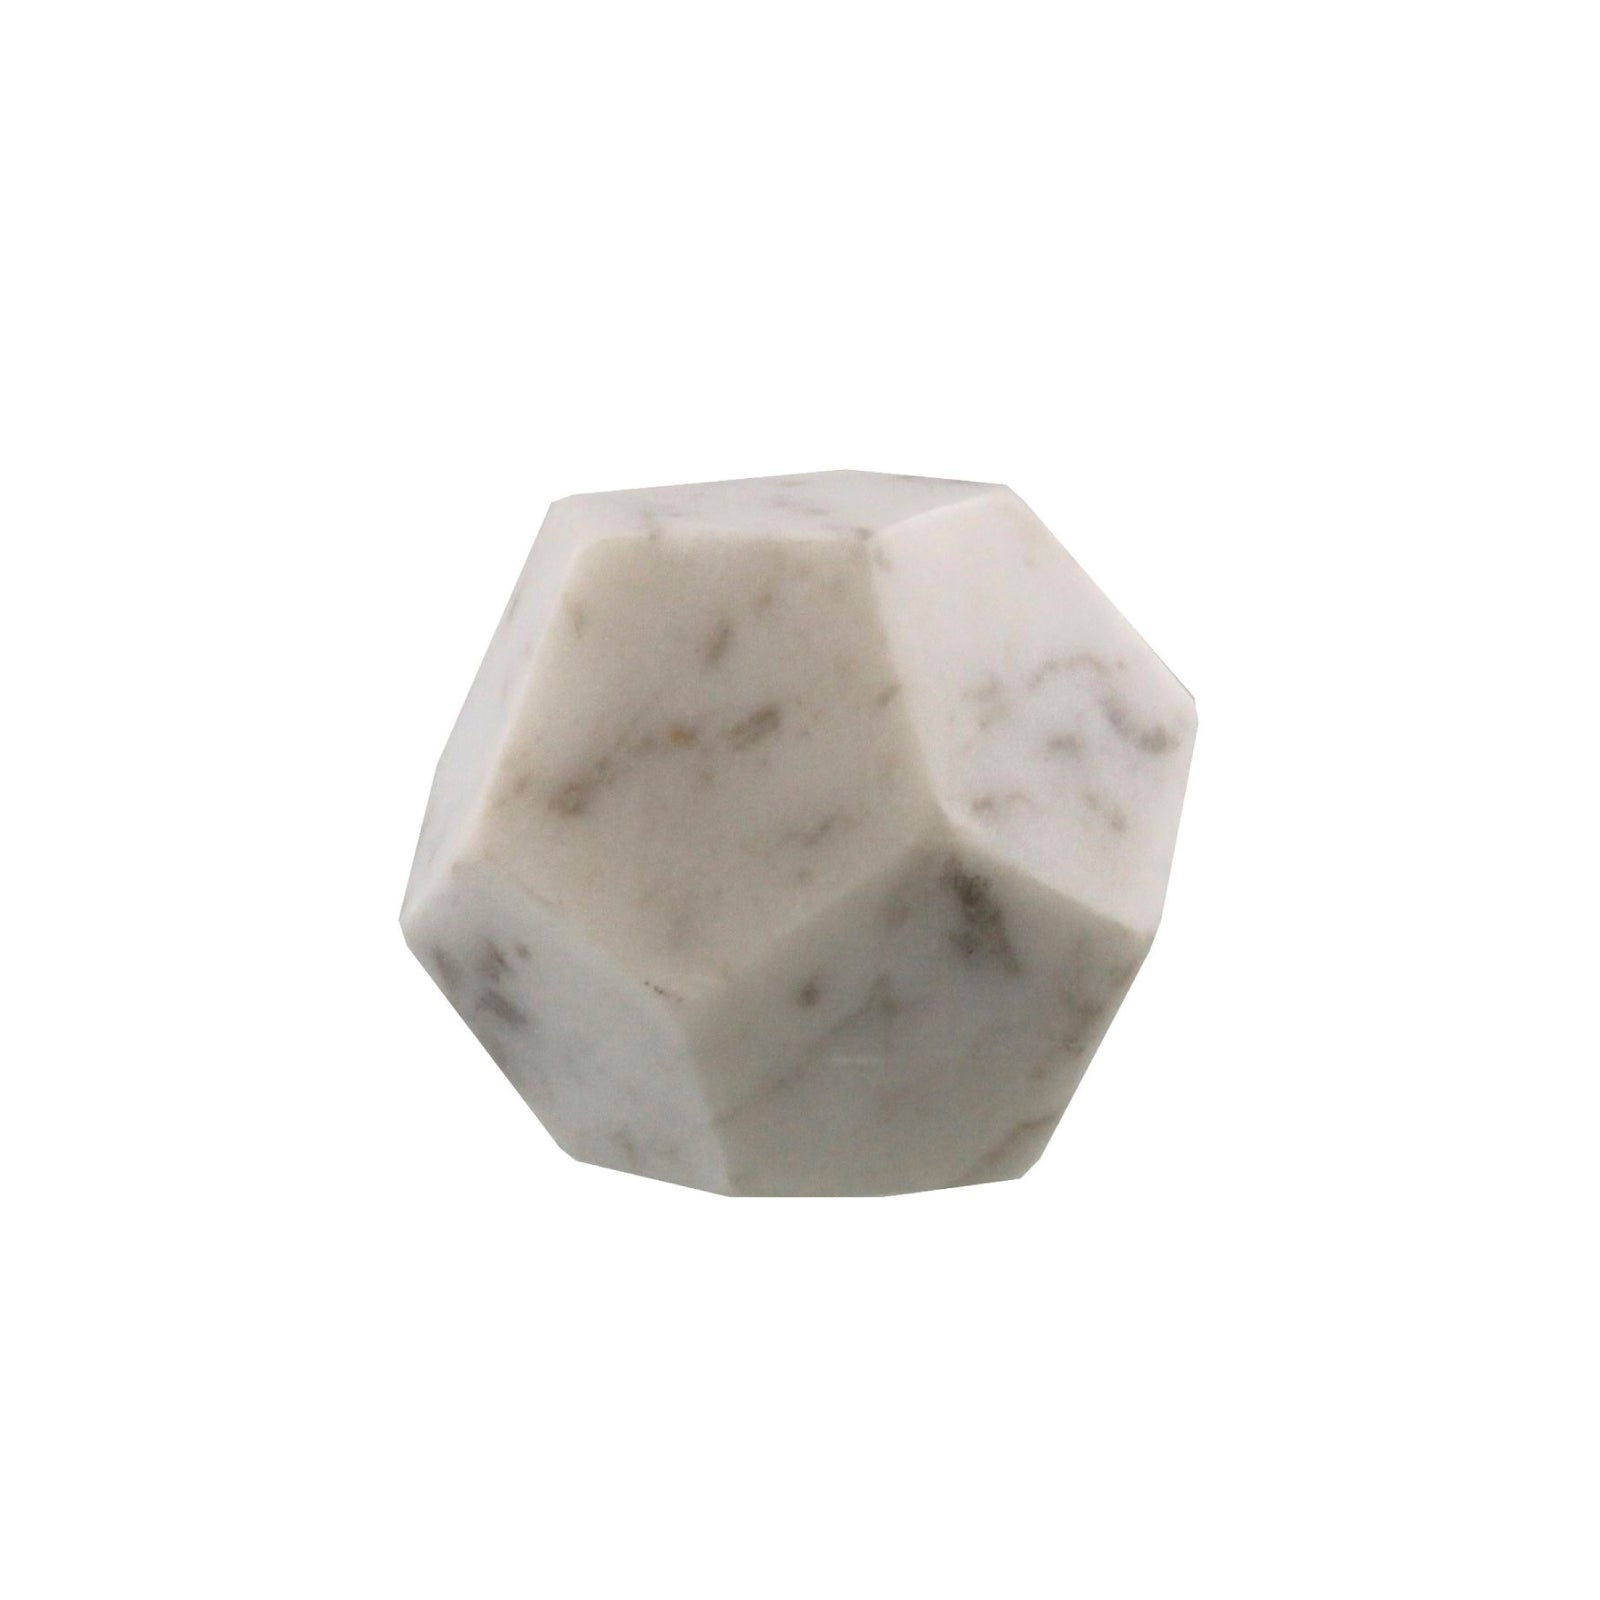 Natural Soapstone Object